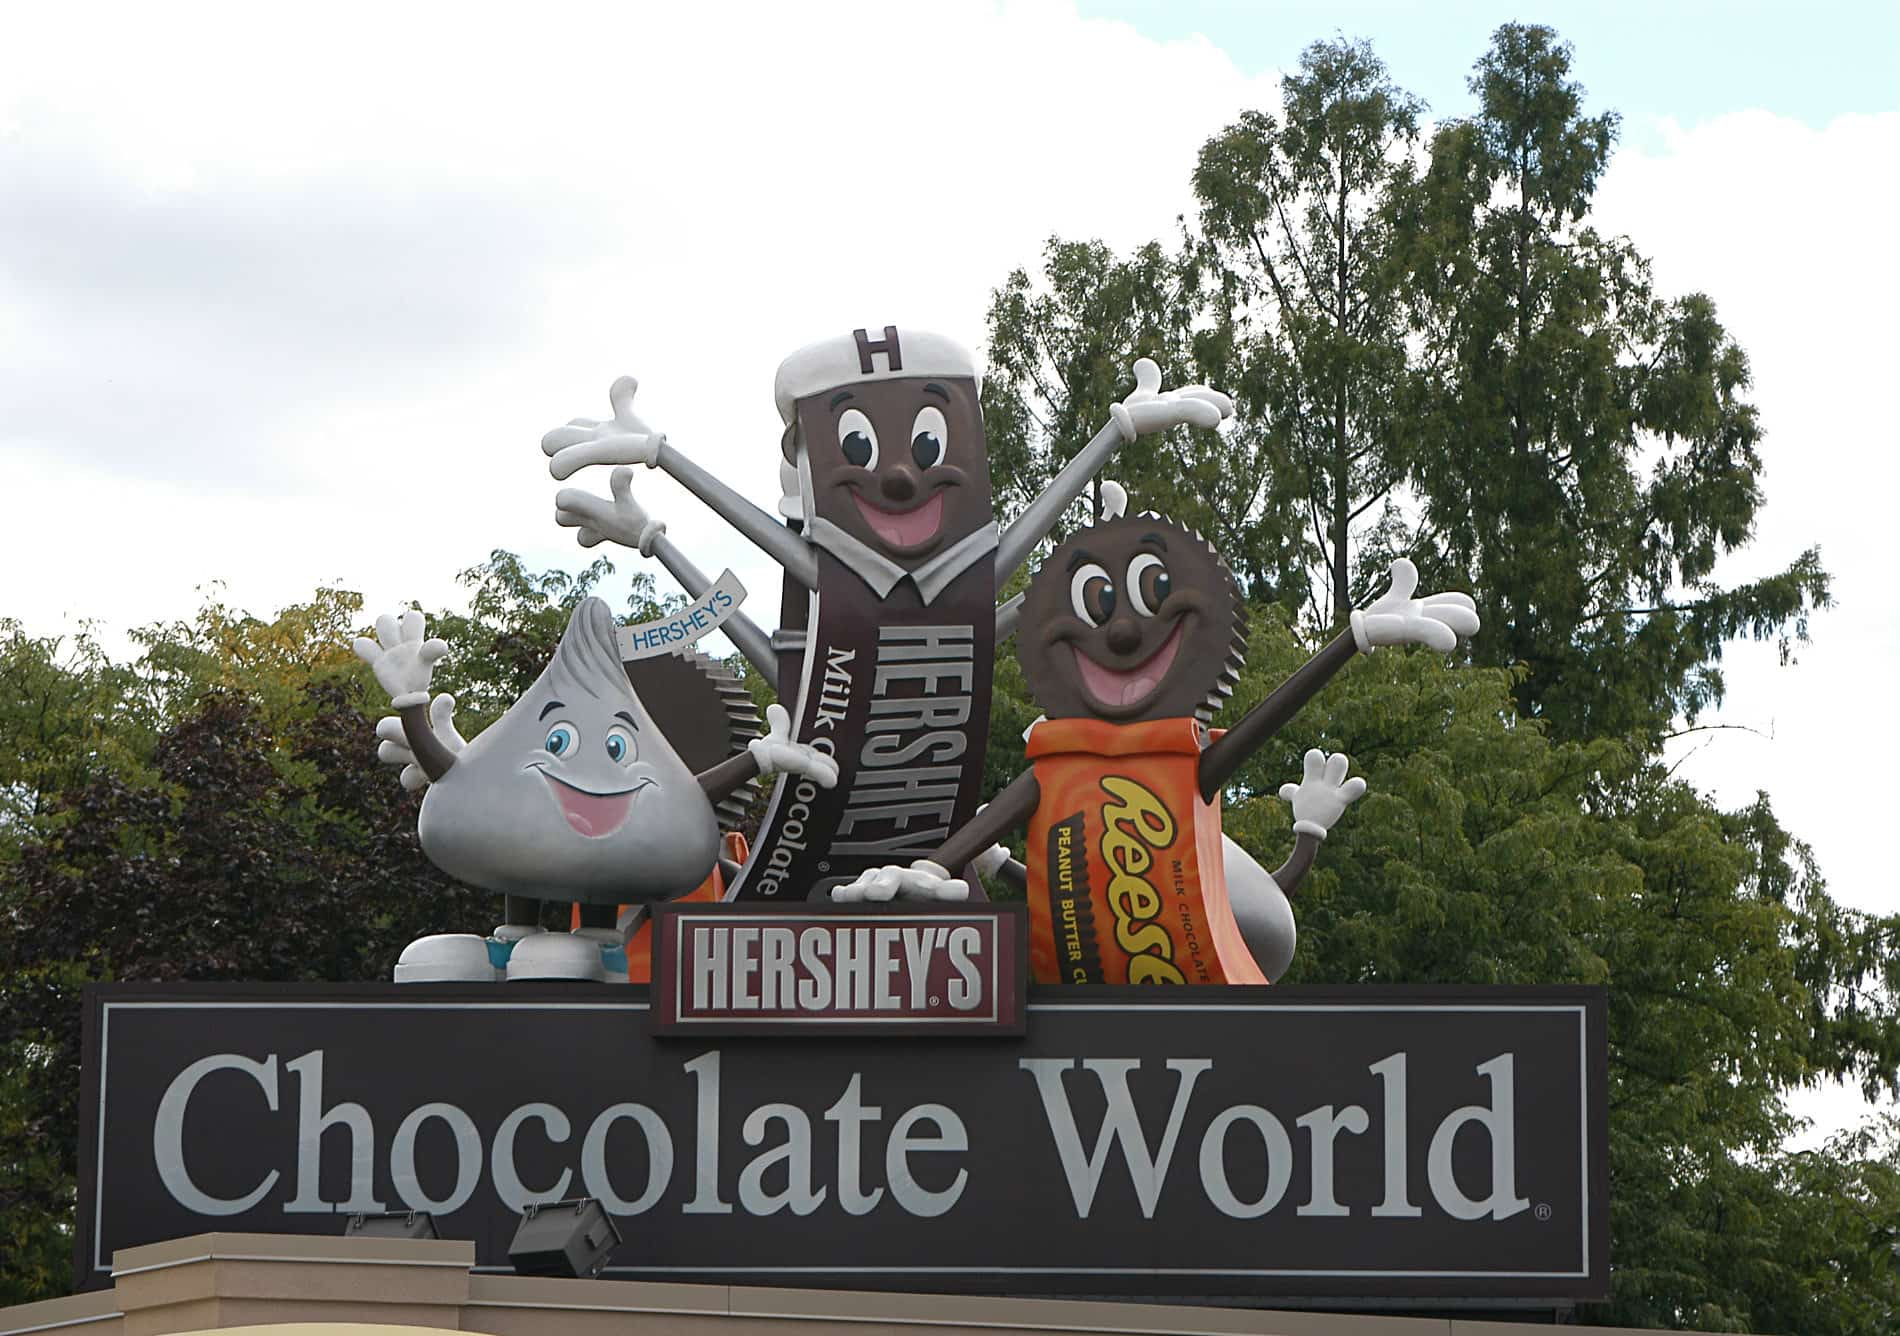 Picture of chocolate world.